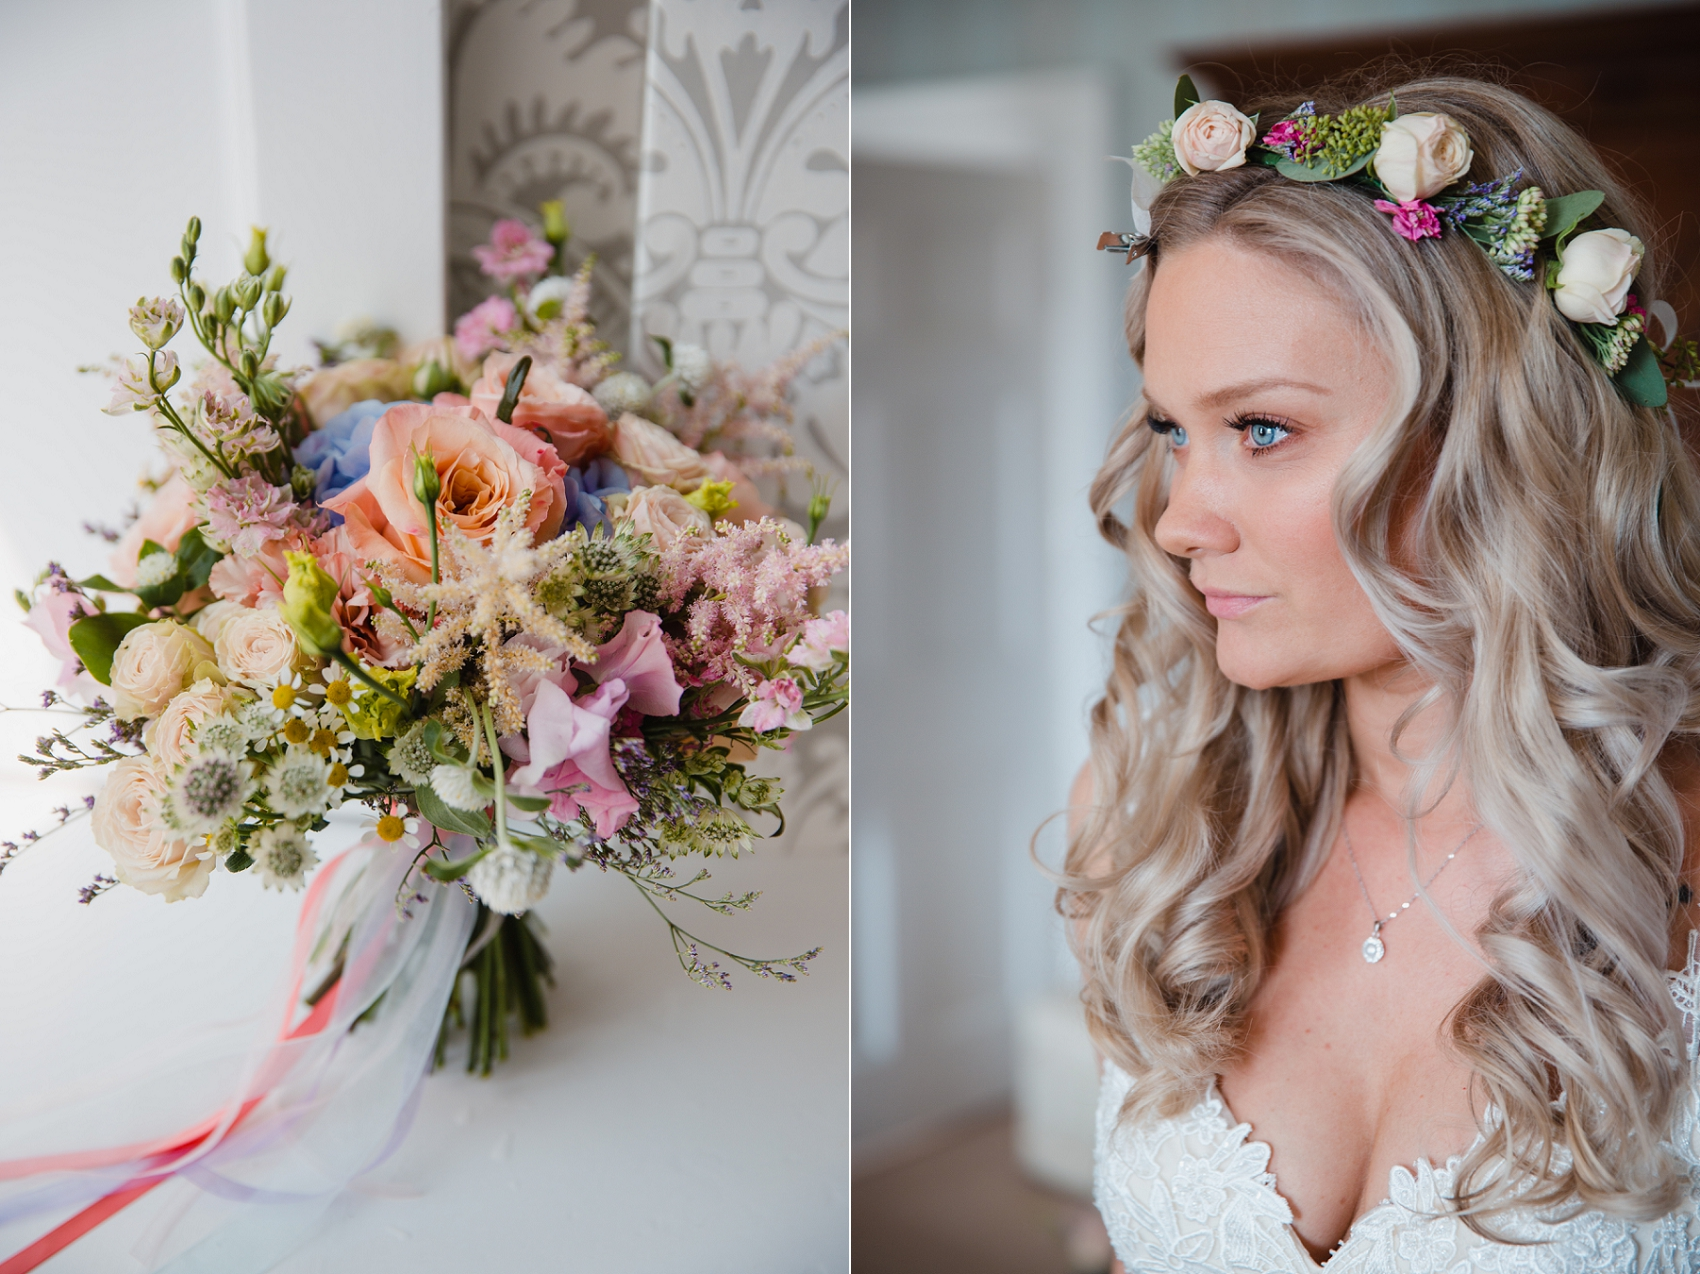 Spring wedding style at Norwood Park